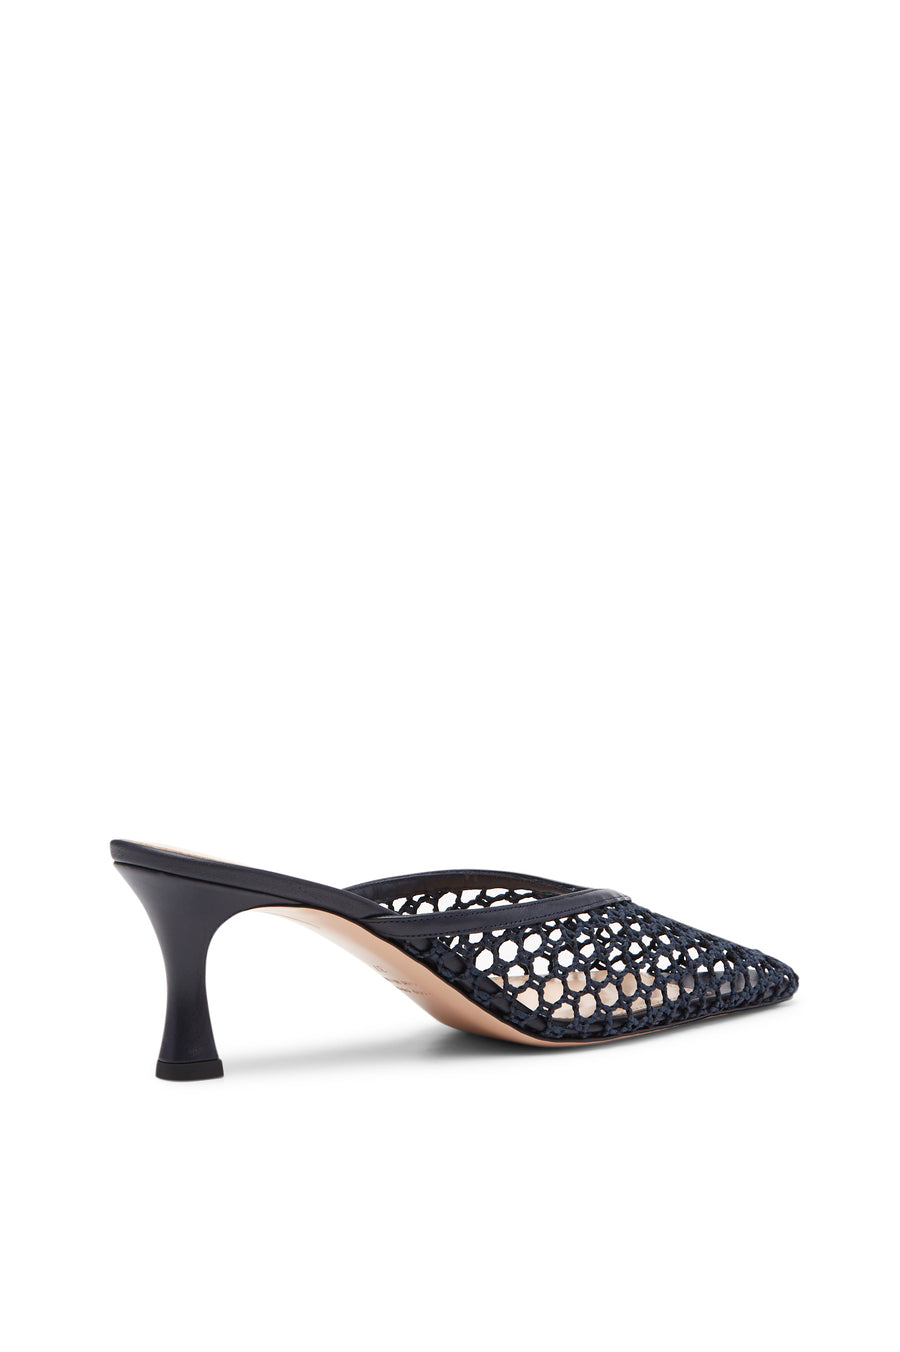 The slip on silhouette is crafted in Italy with luxurious leather and cotton mesh, set a top a 5.5cm heel.